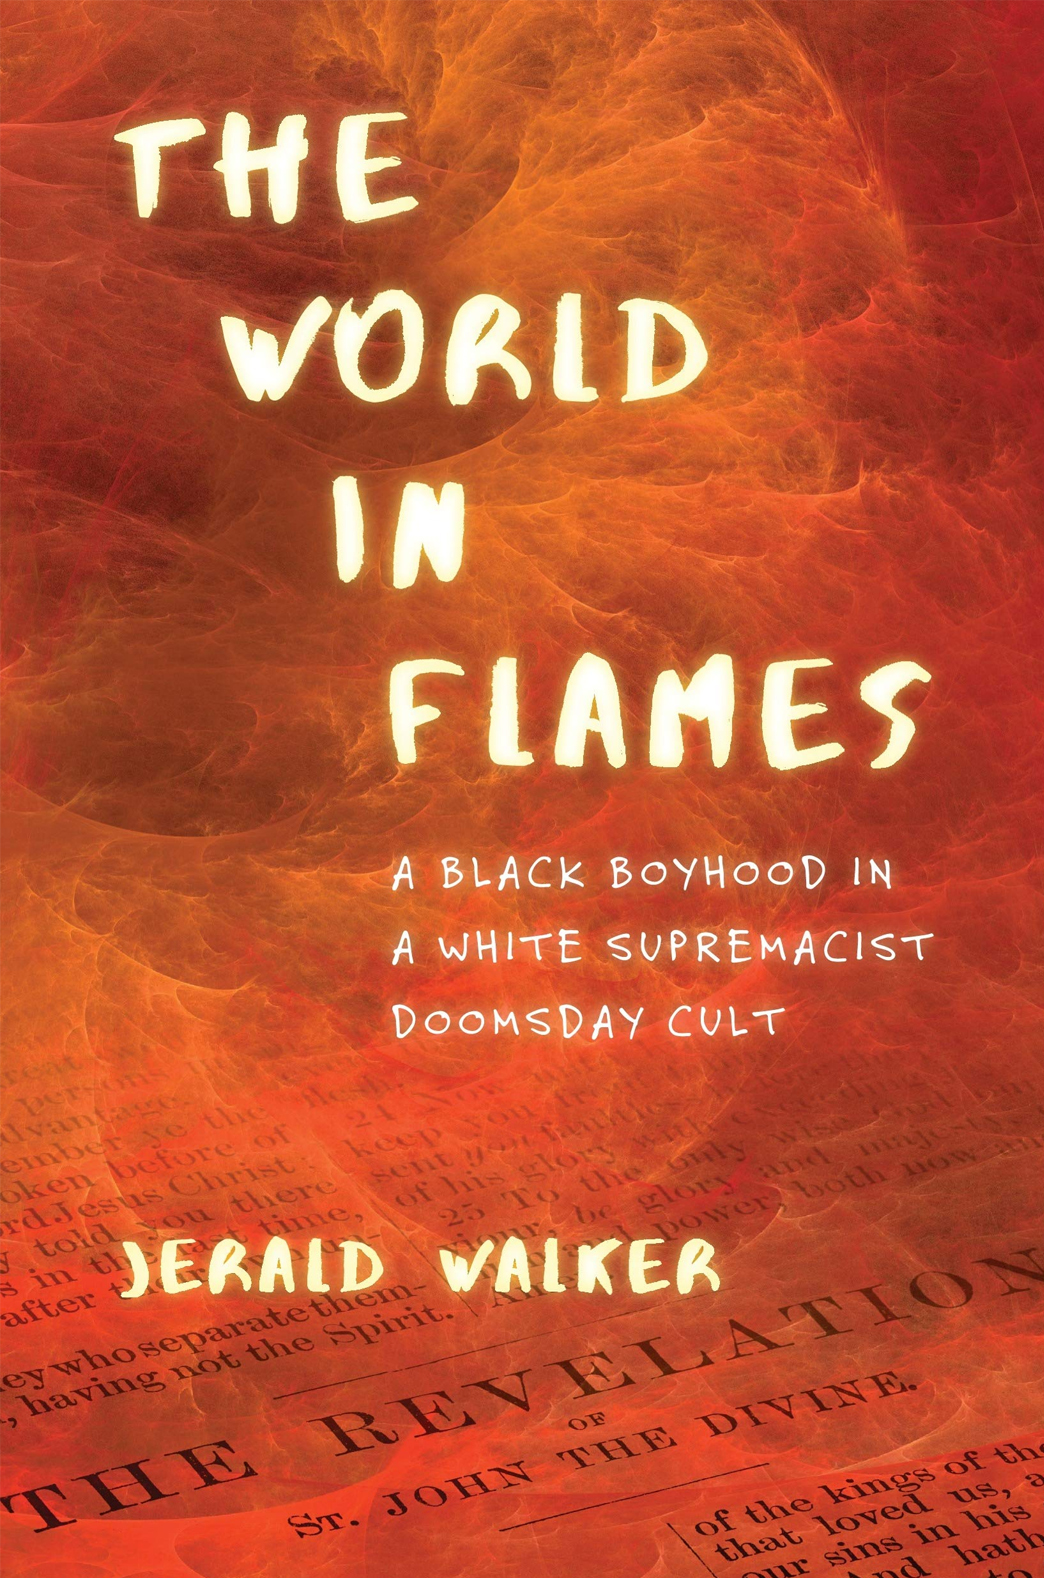 kathleen stone writer booklab literary salon the world in flames jerald walker